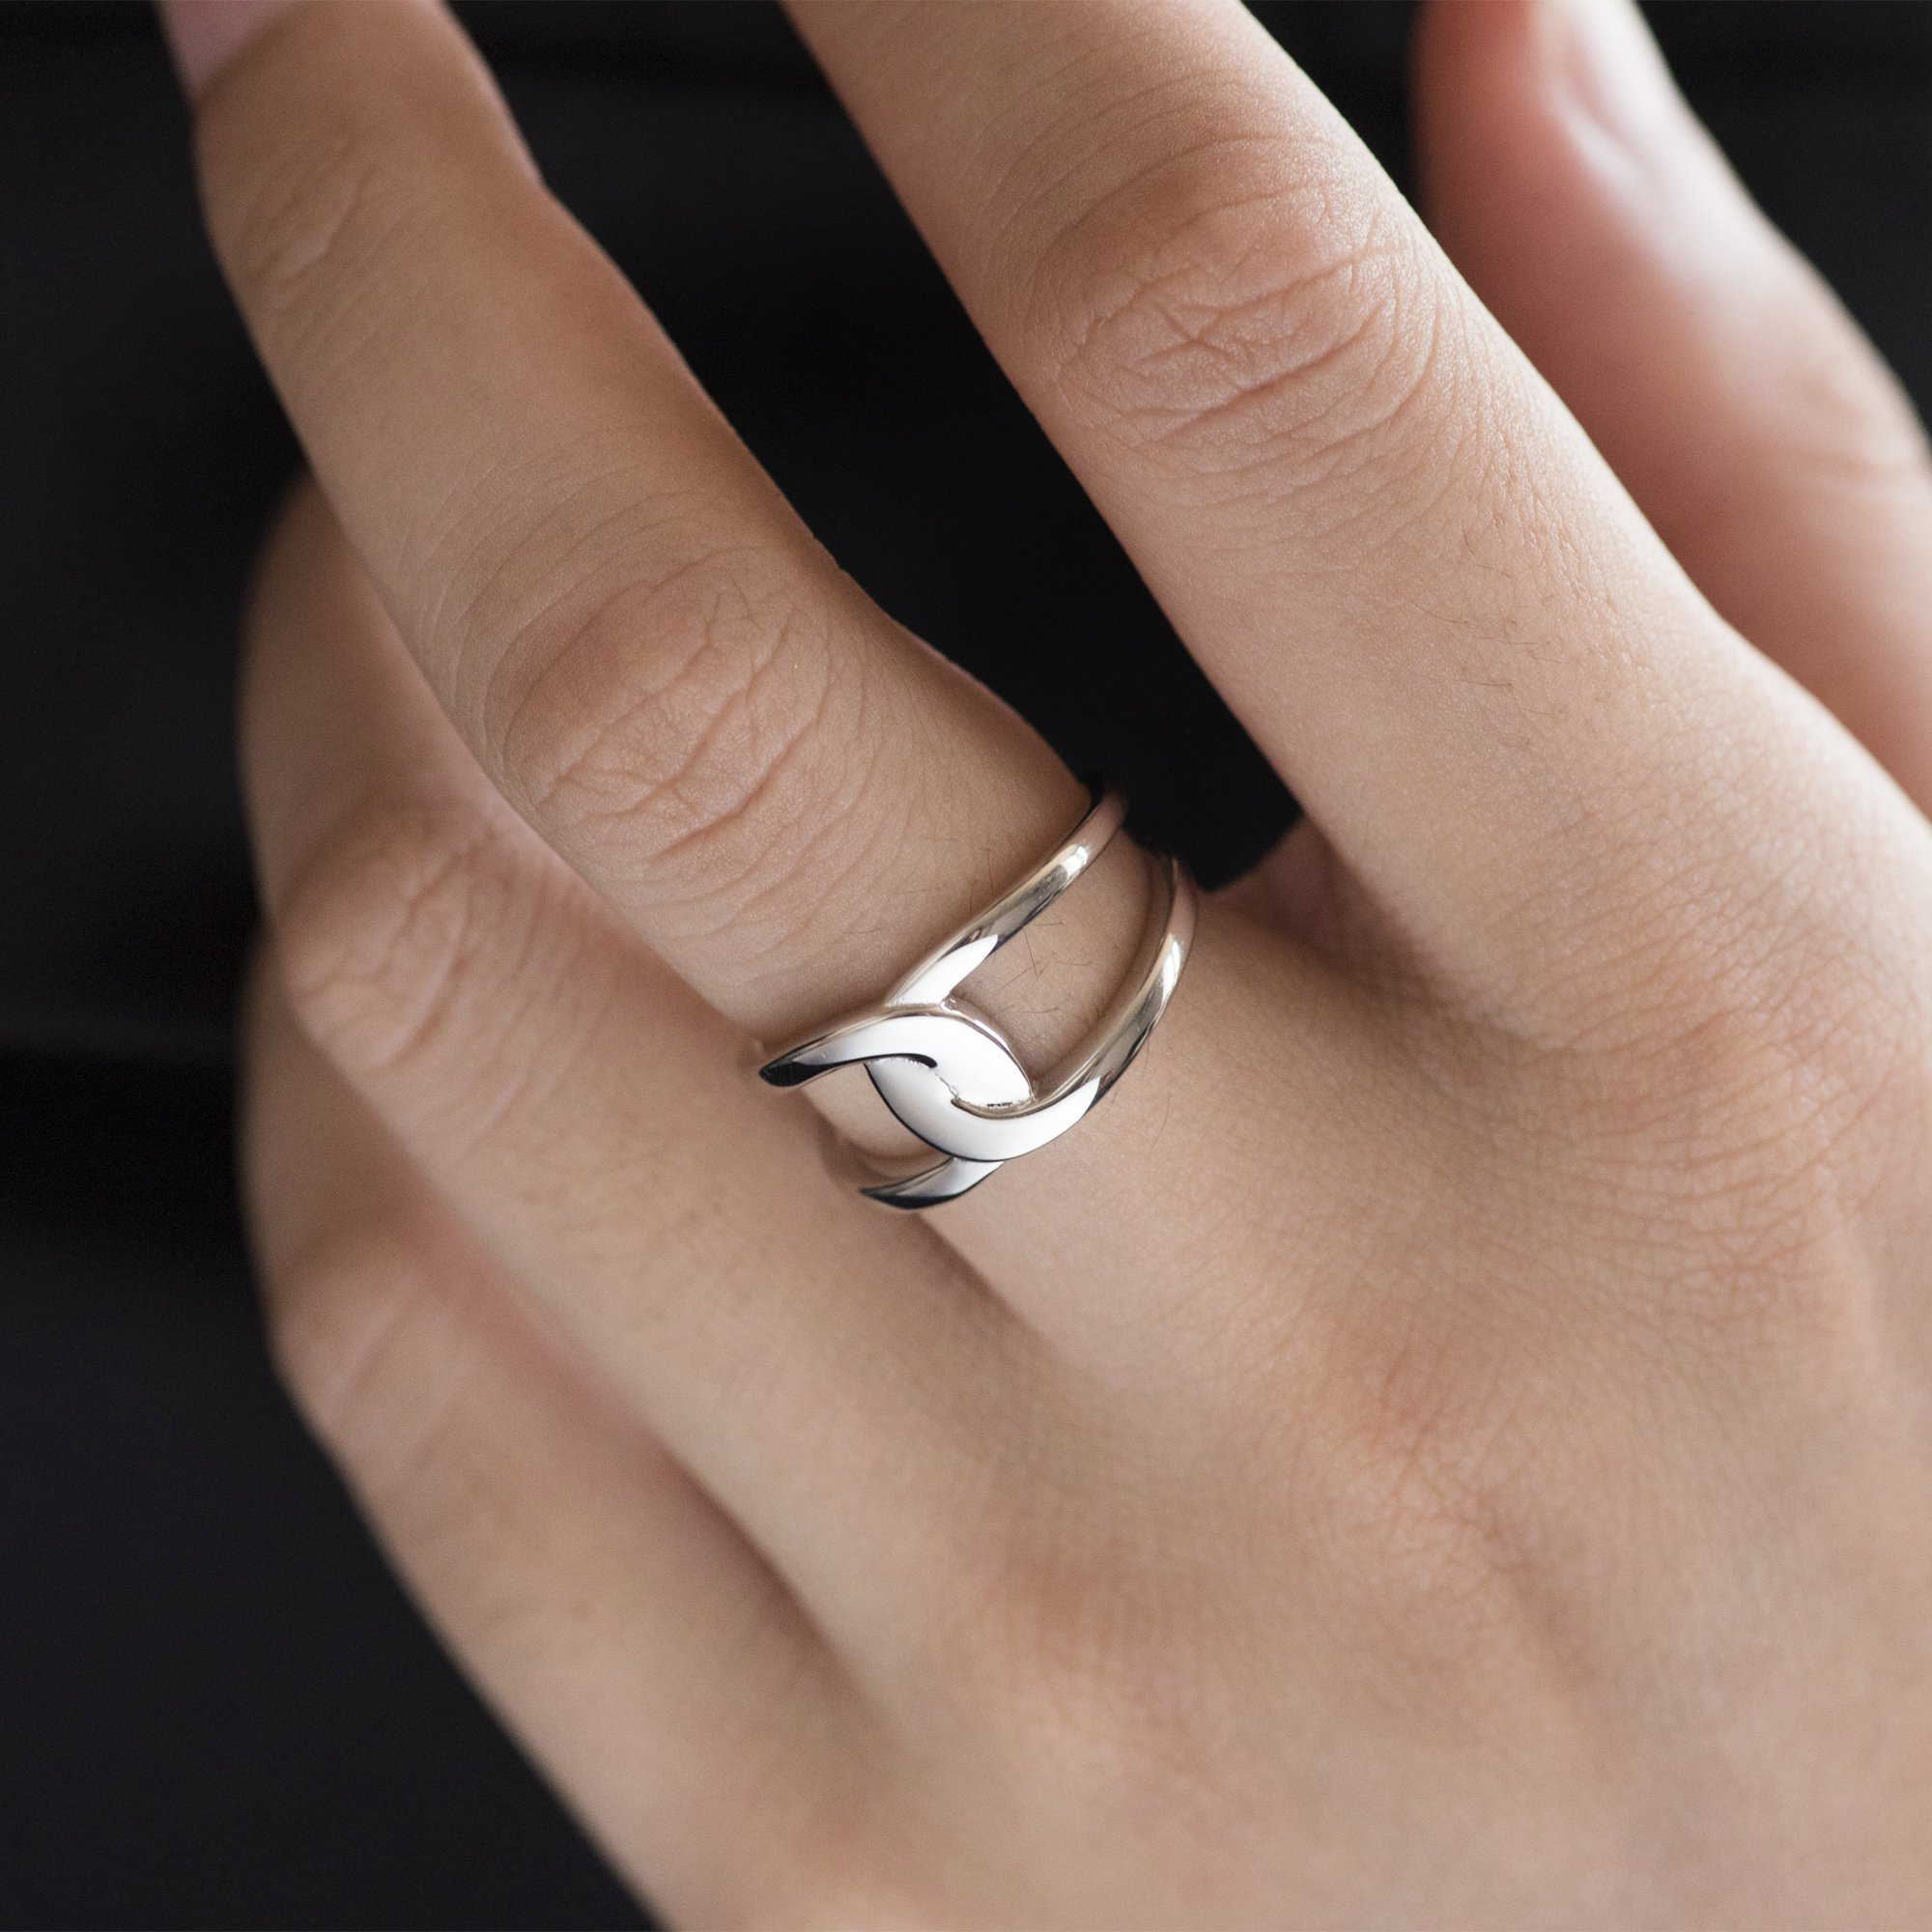 Fonsalette Gold Plated Infinity Ring Sterling Silver Open Twist Ring Two Band Ring (silver) by Fonsalette (Image #2)